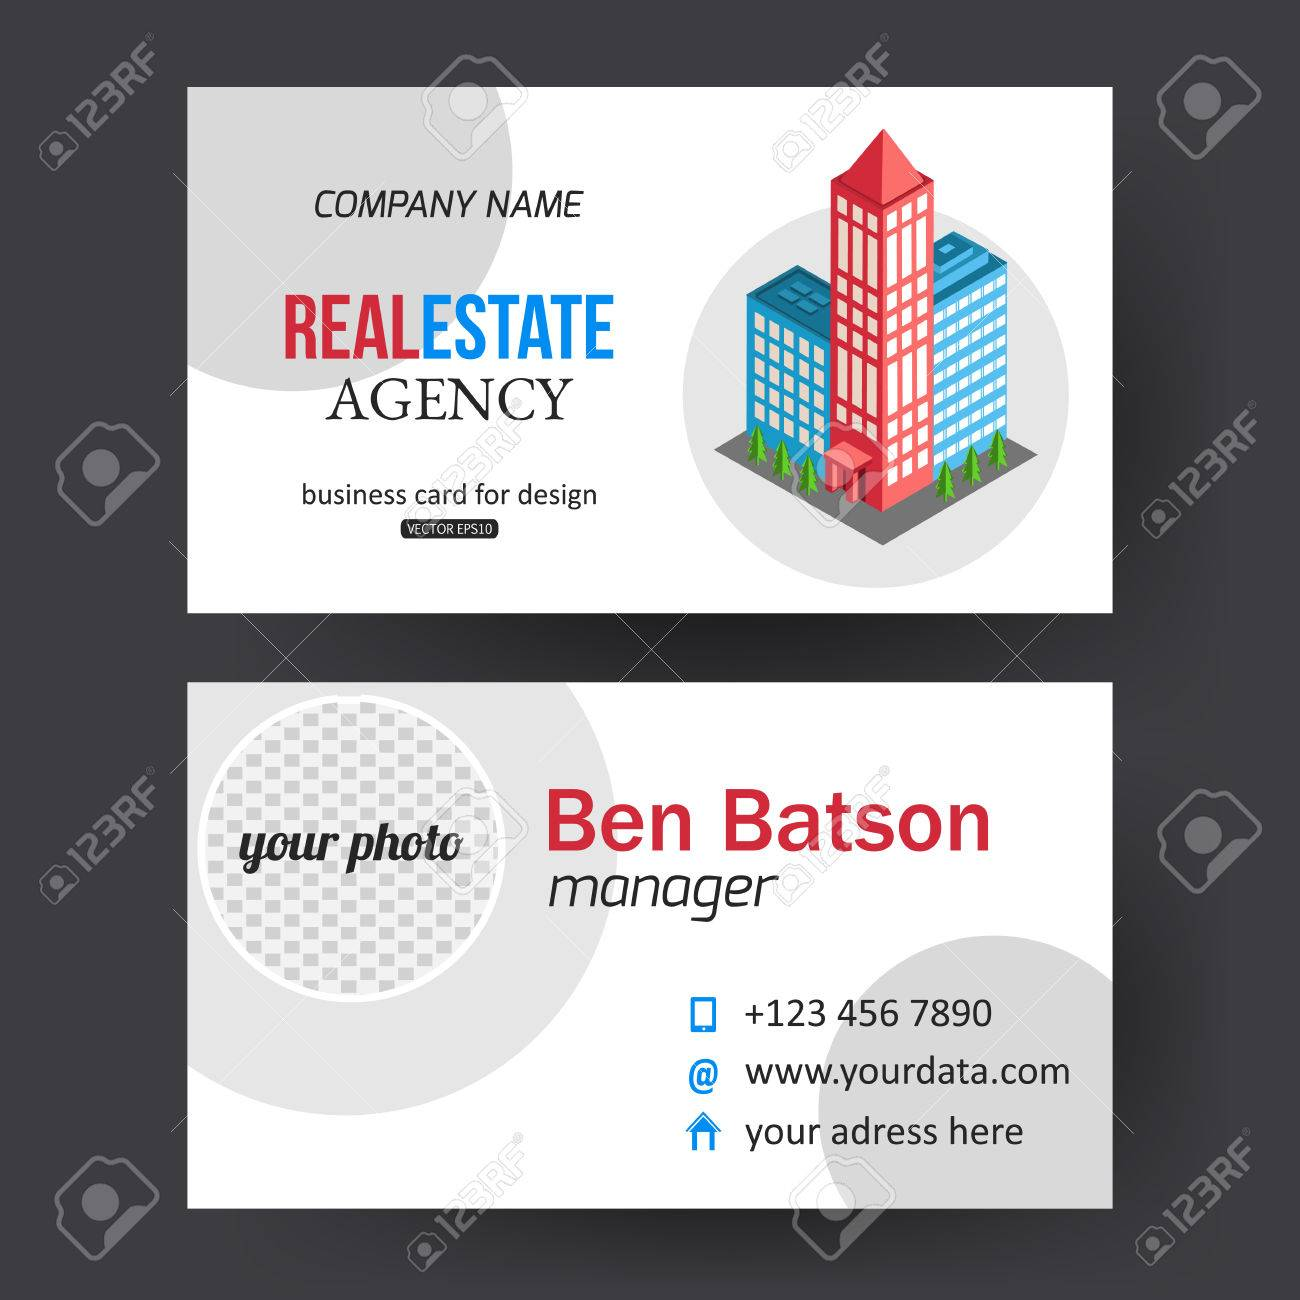 Flat isometric city real estate business card template with place flat isometric city real estate business card template with place for text and place for photo colourmoves